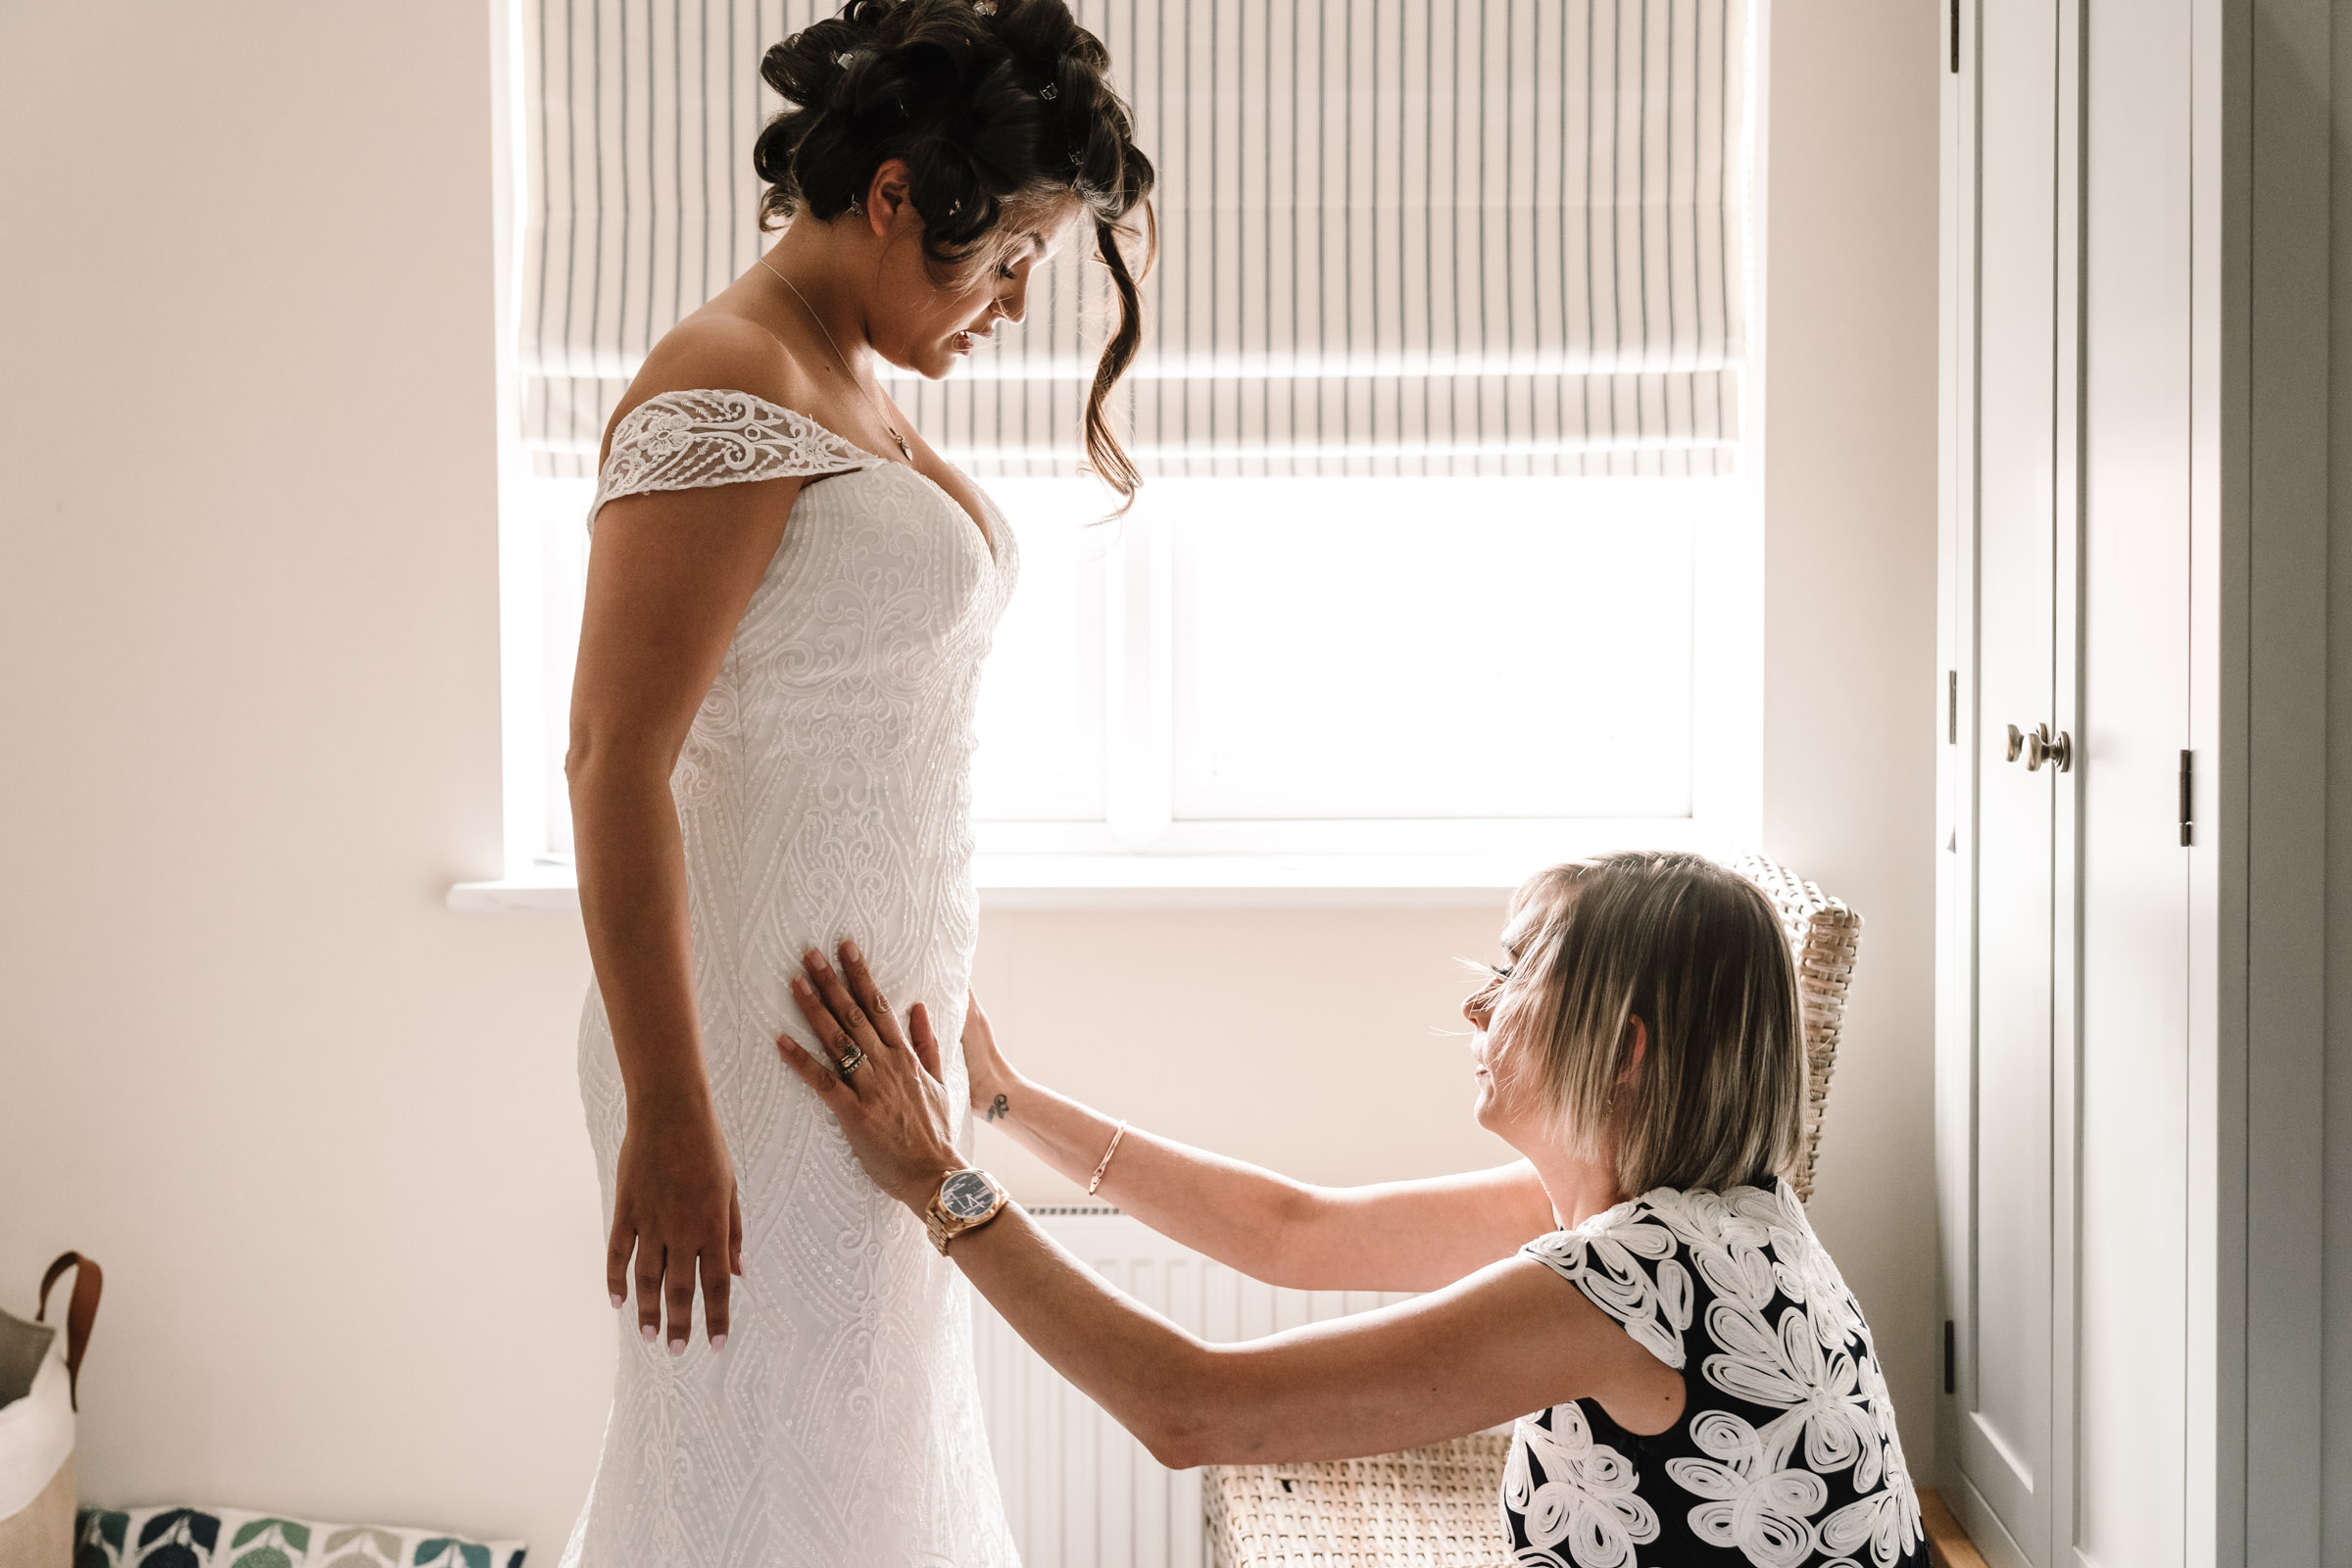 Bride getting into her wedding dress with her Mum